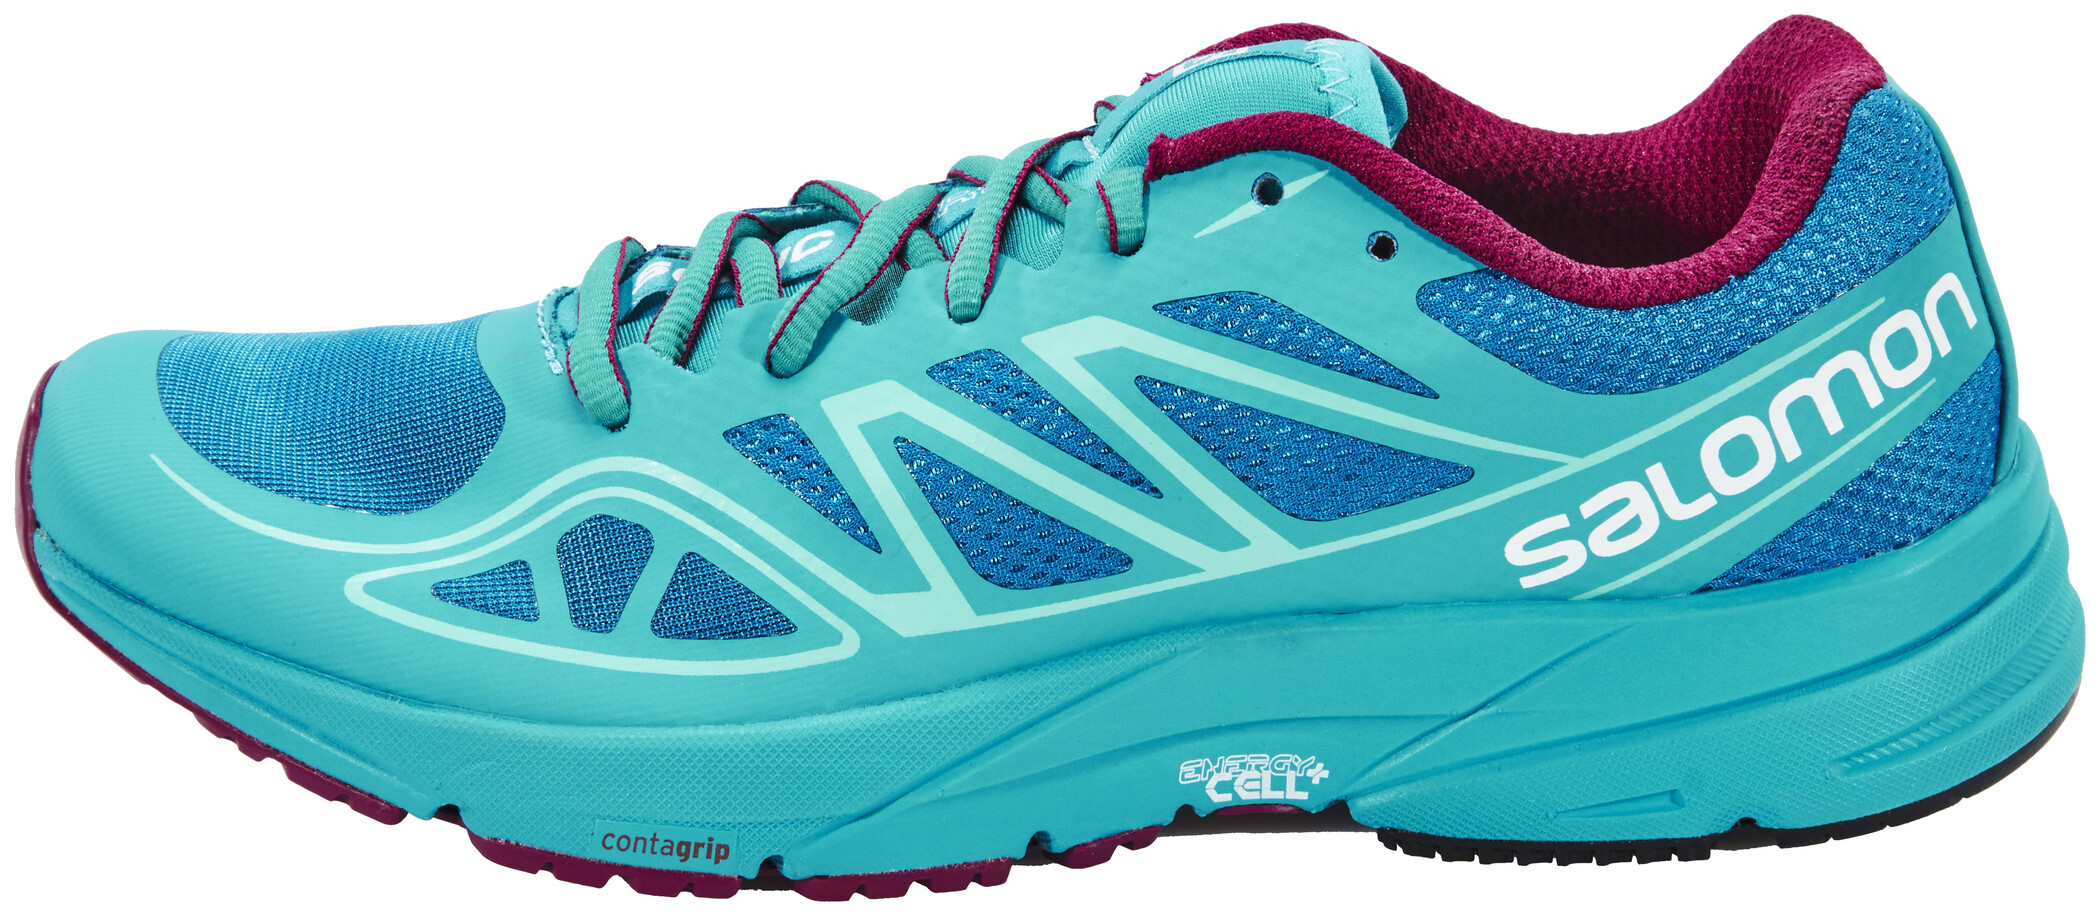 Special Supply Salomon X scream 3d Teal Blue Trail Running